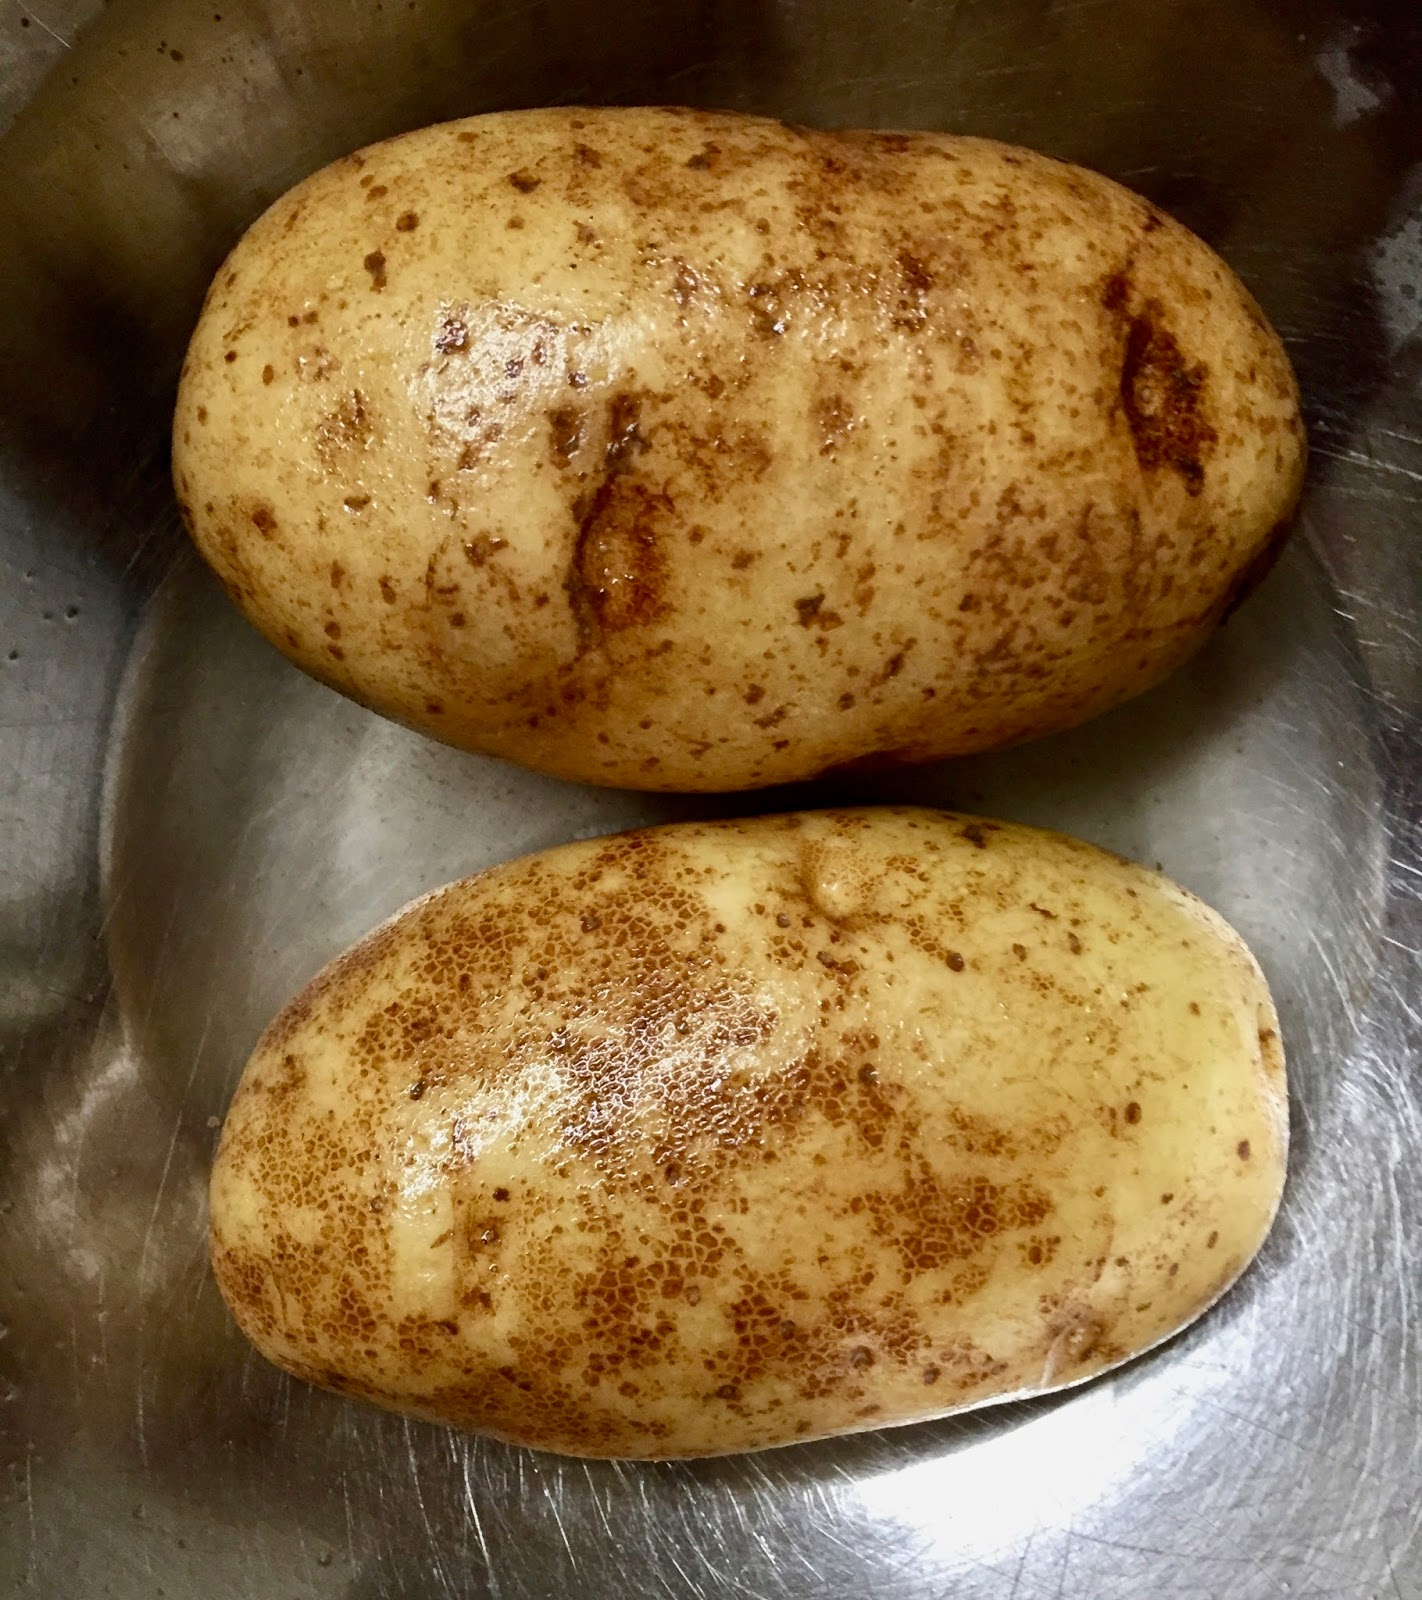 adjust oven rack to middle position and heat oven to 450 degrees dissolve 2 tablespoons salt in 12 cup water in large bowl place potatoes in bowl and - Americas Test Kitchen Baked Potato